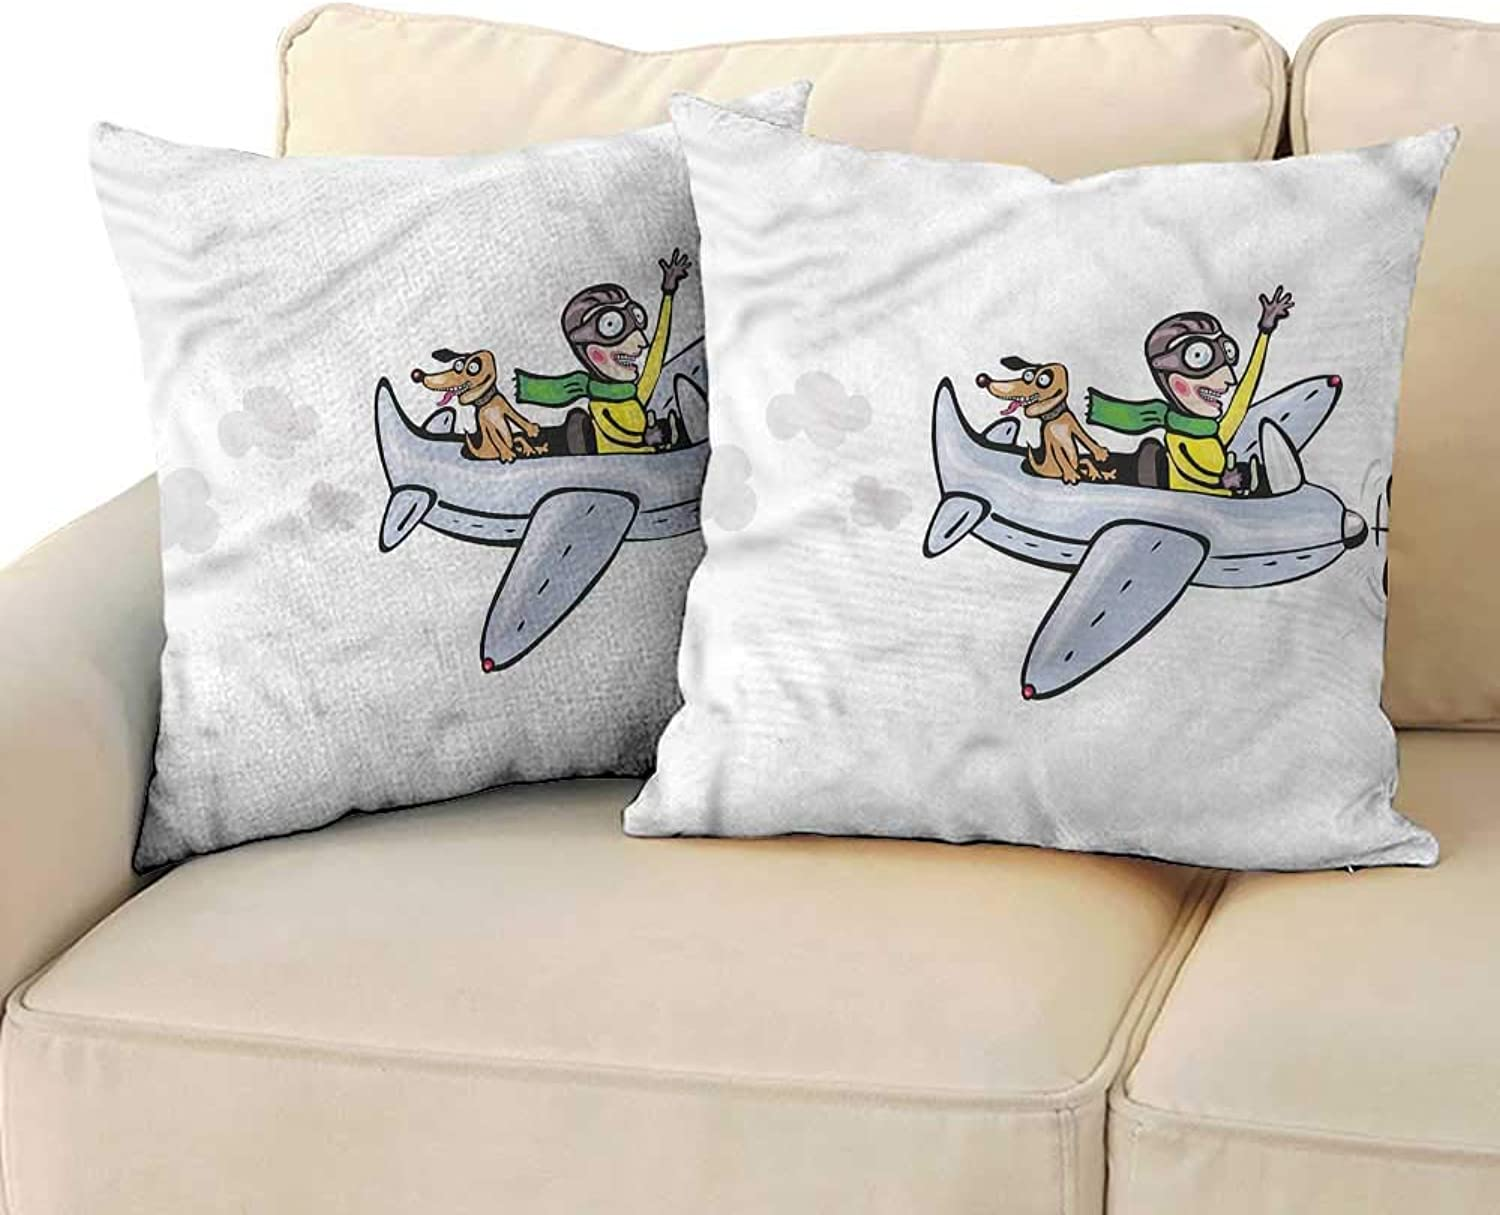 RuppertTextile Boys Room Simple Pillowcase Air Doodle Style Flight Cushion W23 x L23